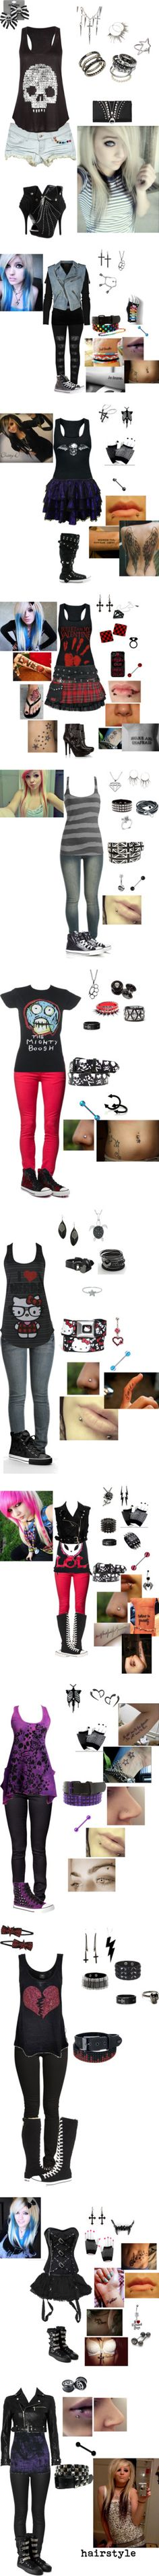 """Emo / gothic clothes Part 4"" by foreverbroken ❤ liked on Polyvore - jessi's basic wardrobe she wishes"